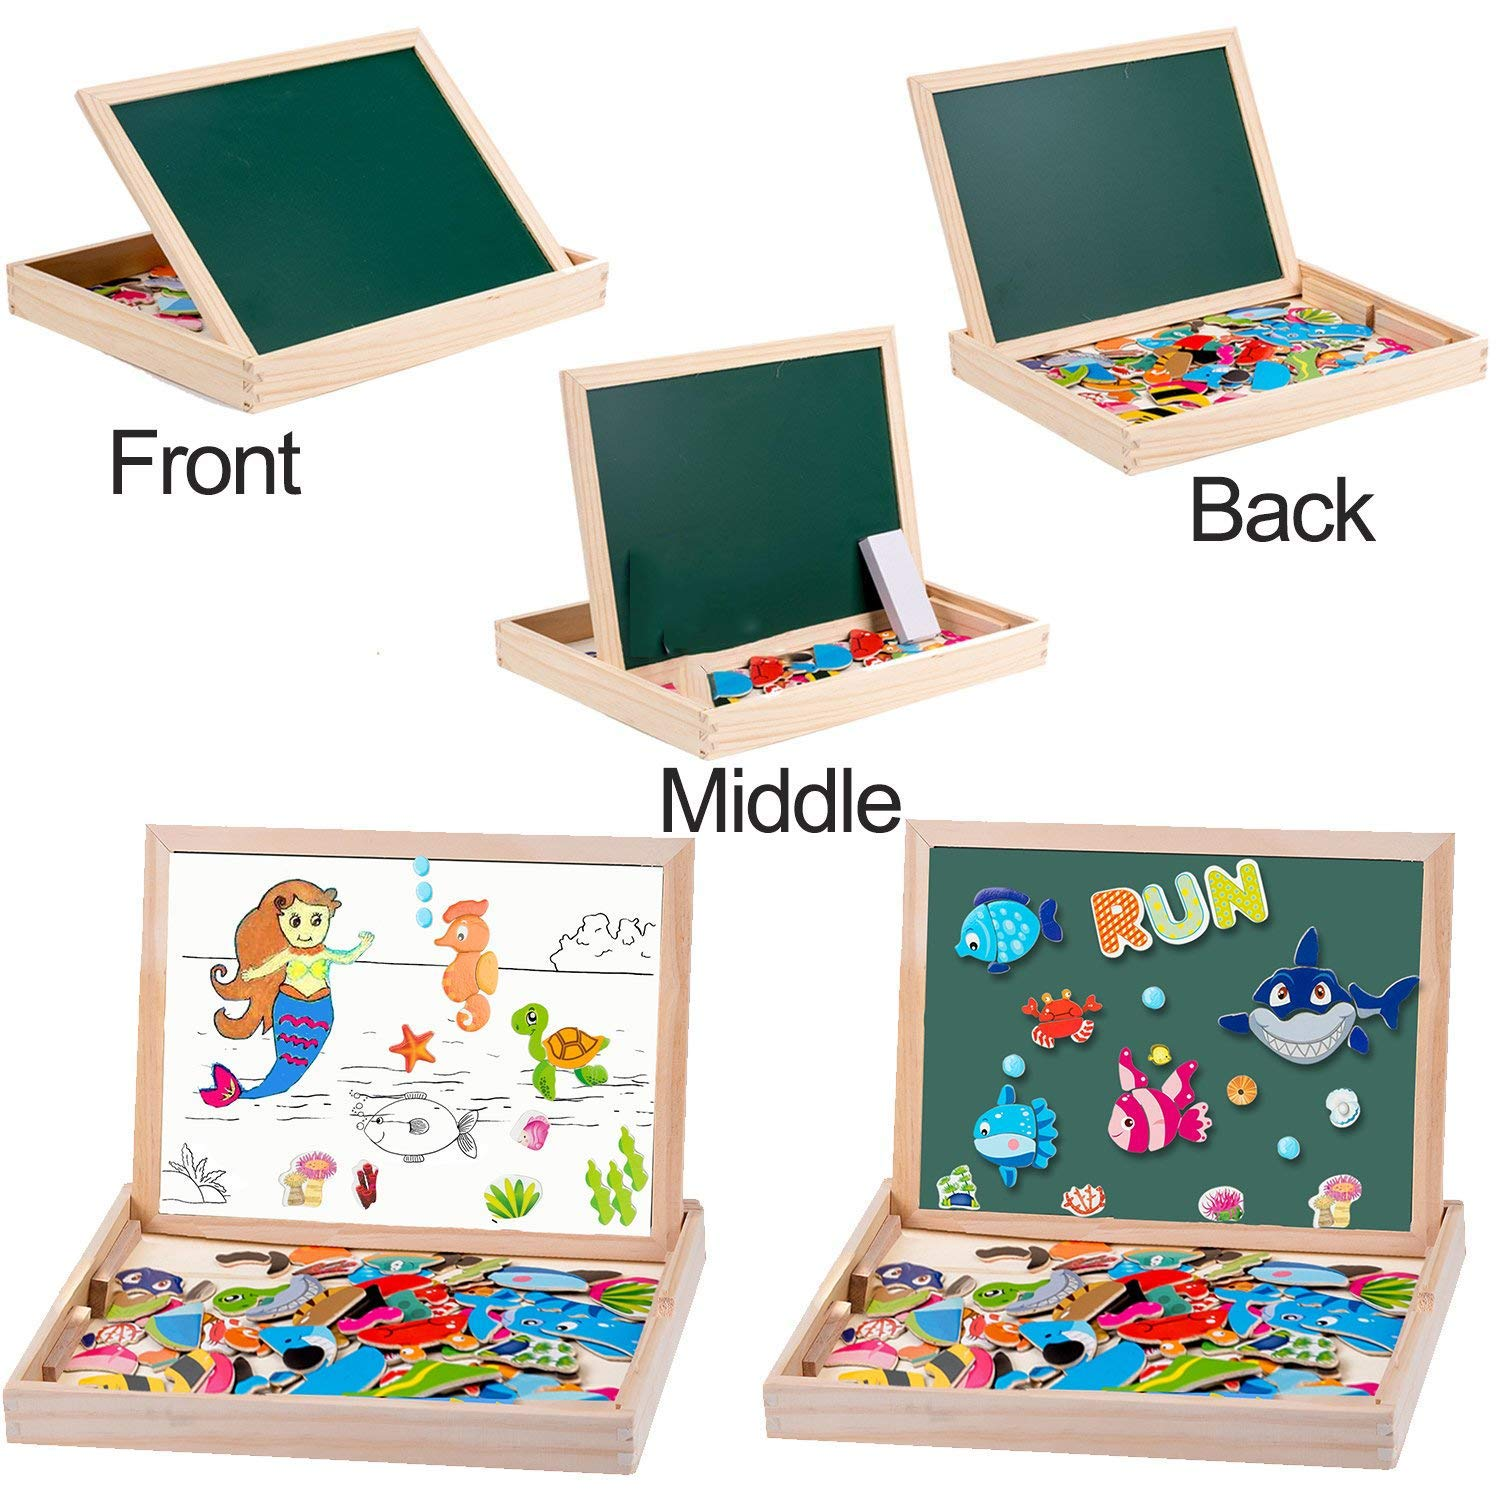 MOVEONSTEP Magnetic Jigsaw Puzzles with Magnetic Numbers and Alphabet Game Total 135 Pieces Double Sided Magnetic Drawing Board Ocean Theme for Children Age 3+